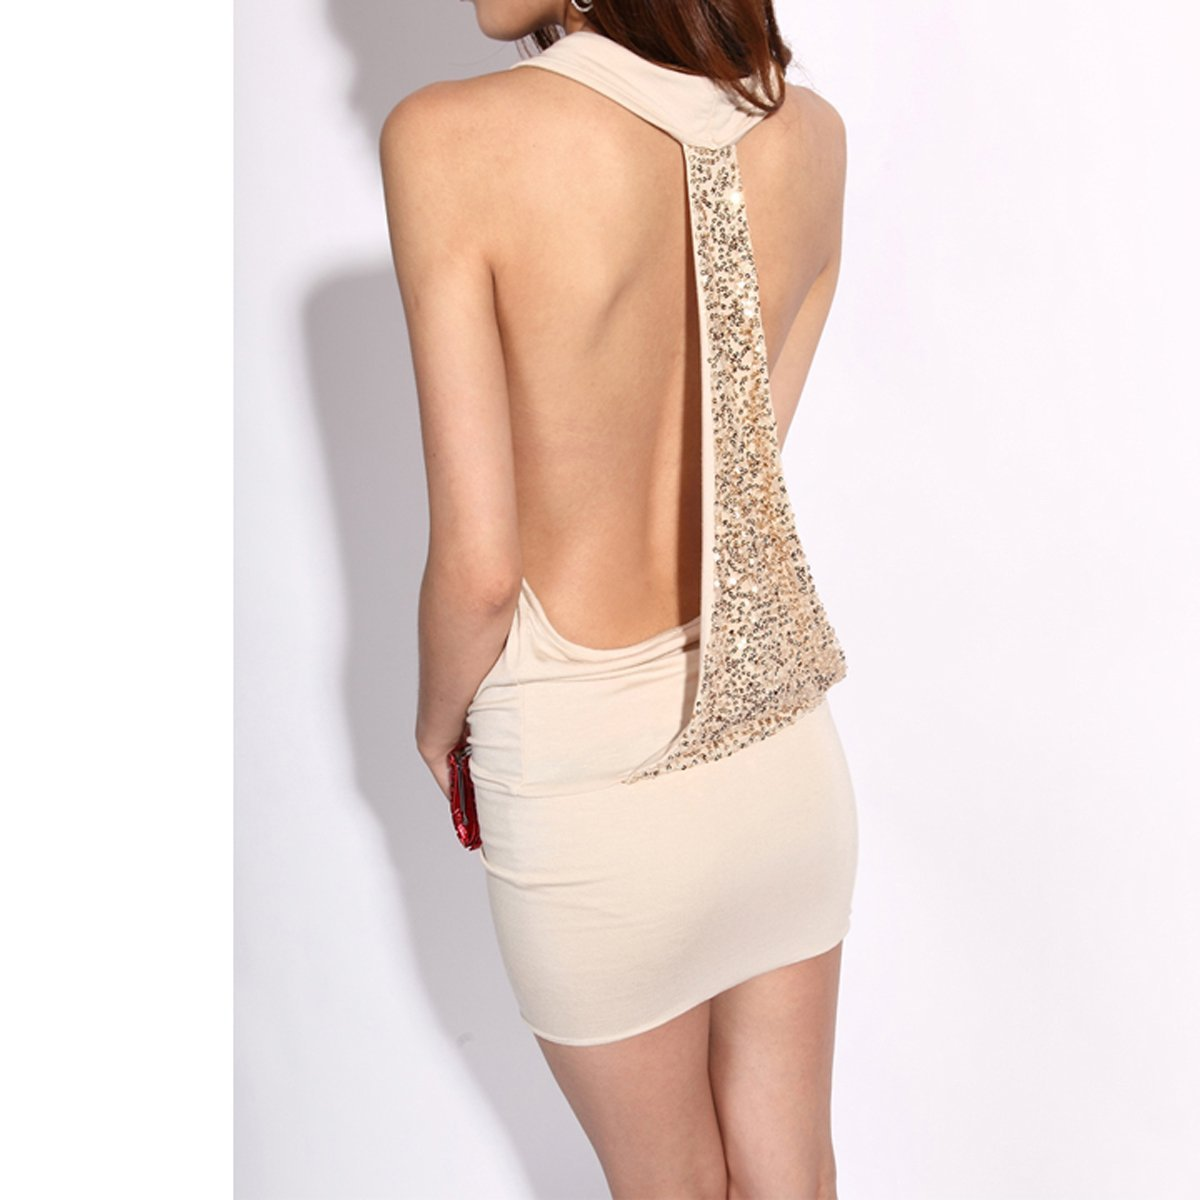 Krazy Sexy Club Cocktail Party Evening Dress #103 Nude